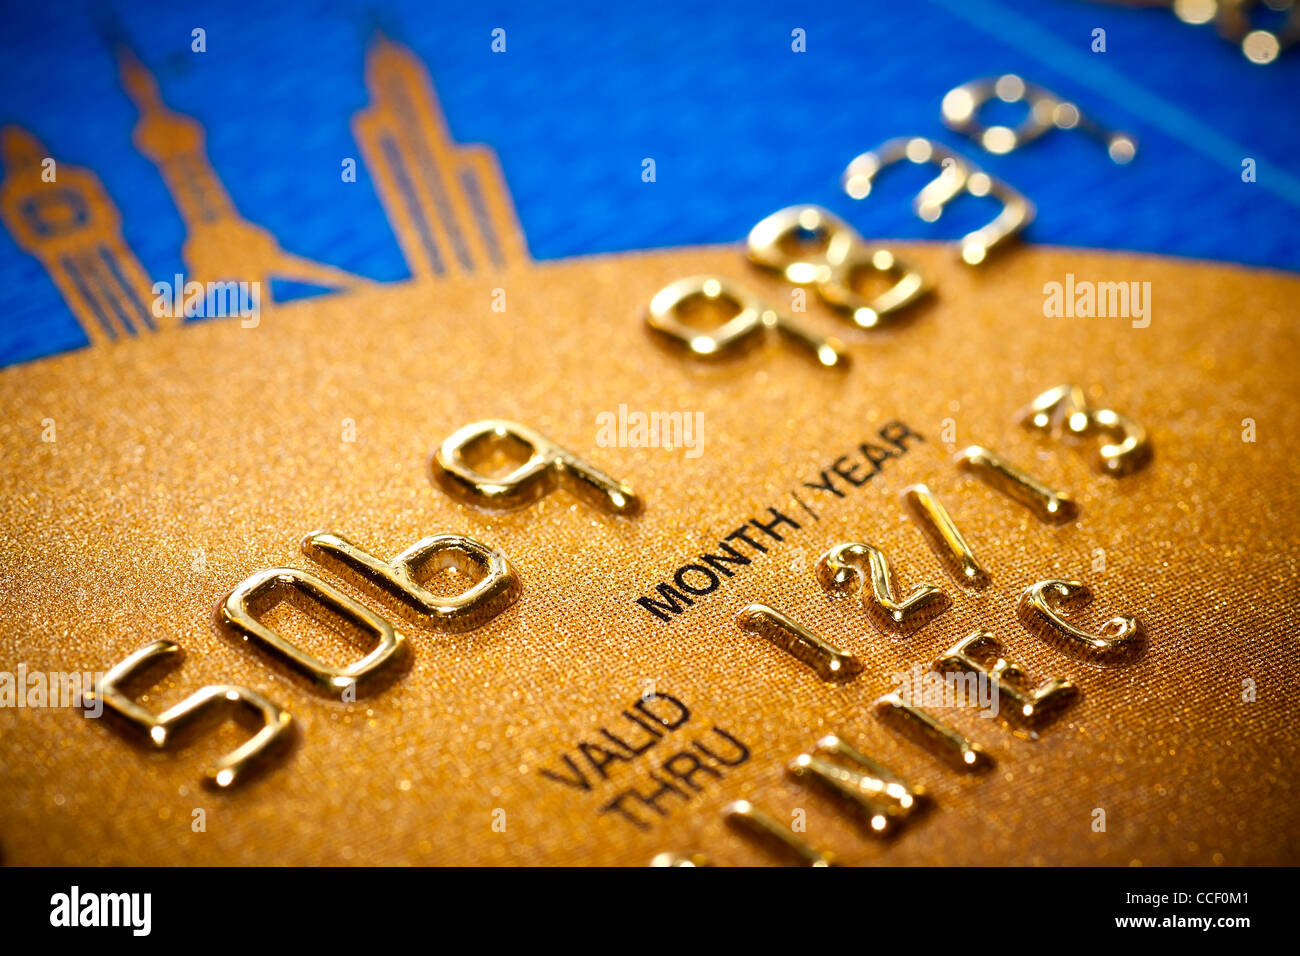 Close-up of silver digits on a credit card. - Stock Image